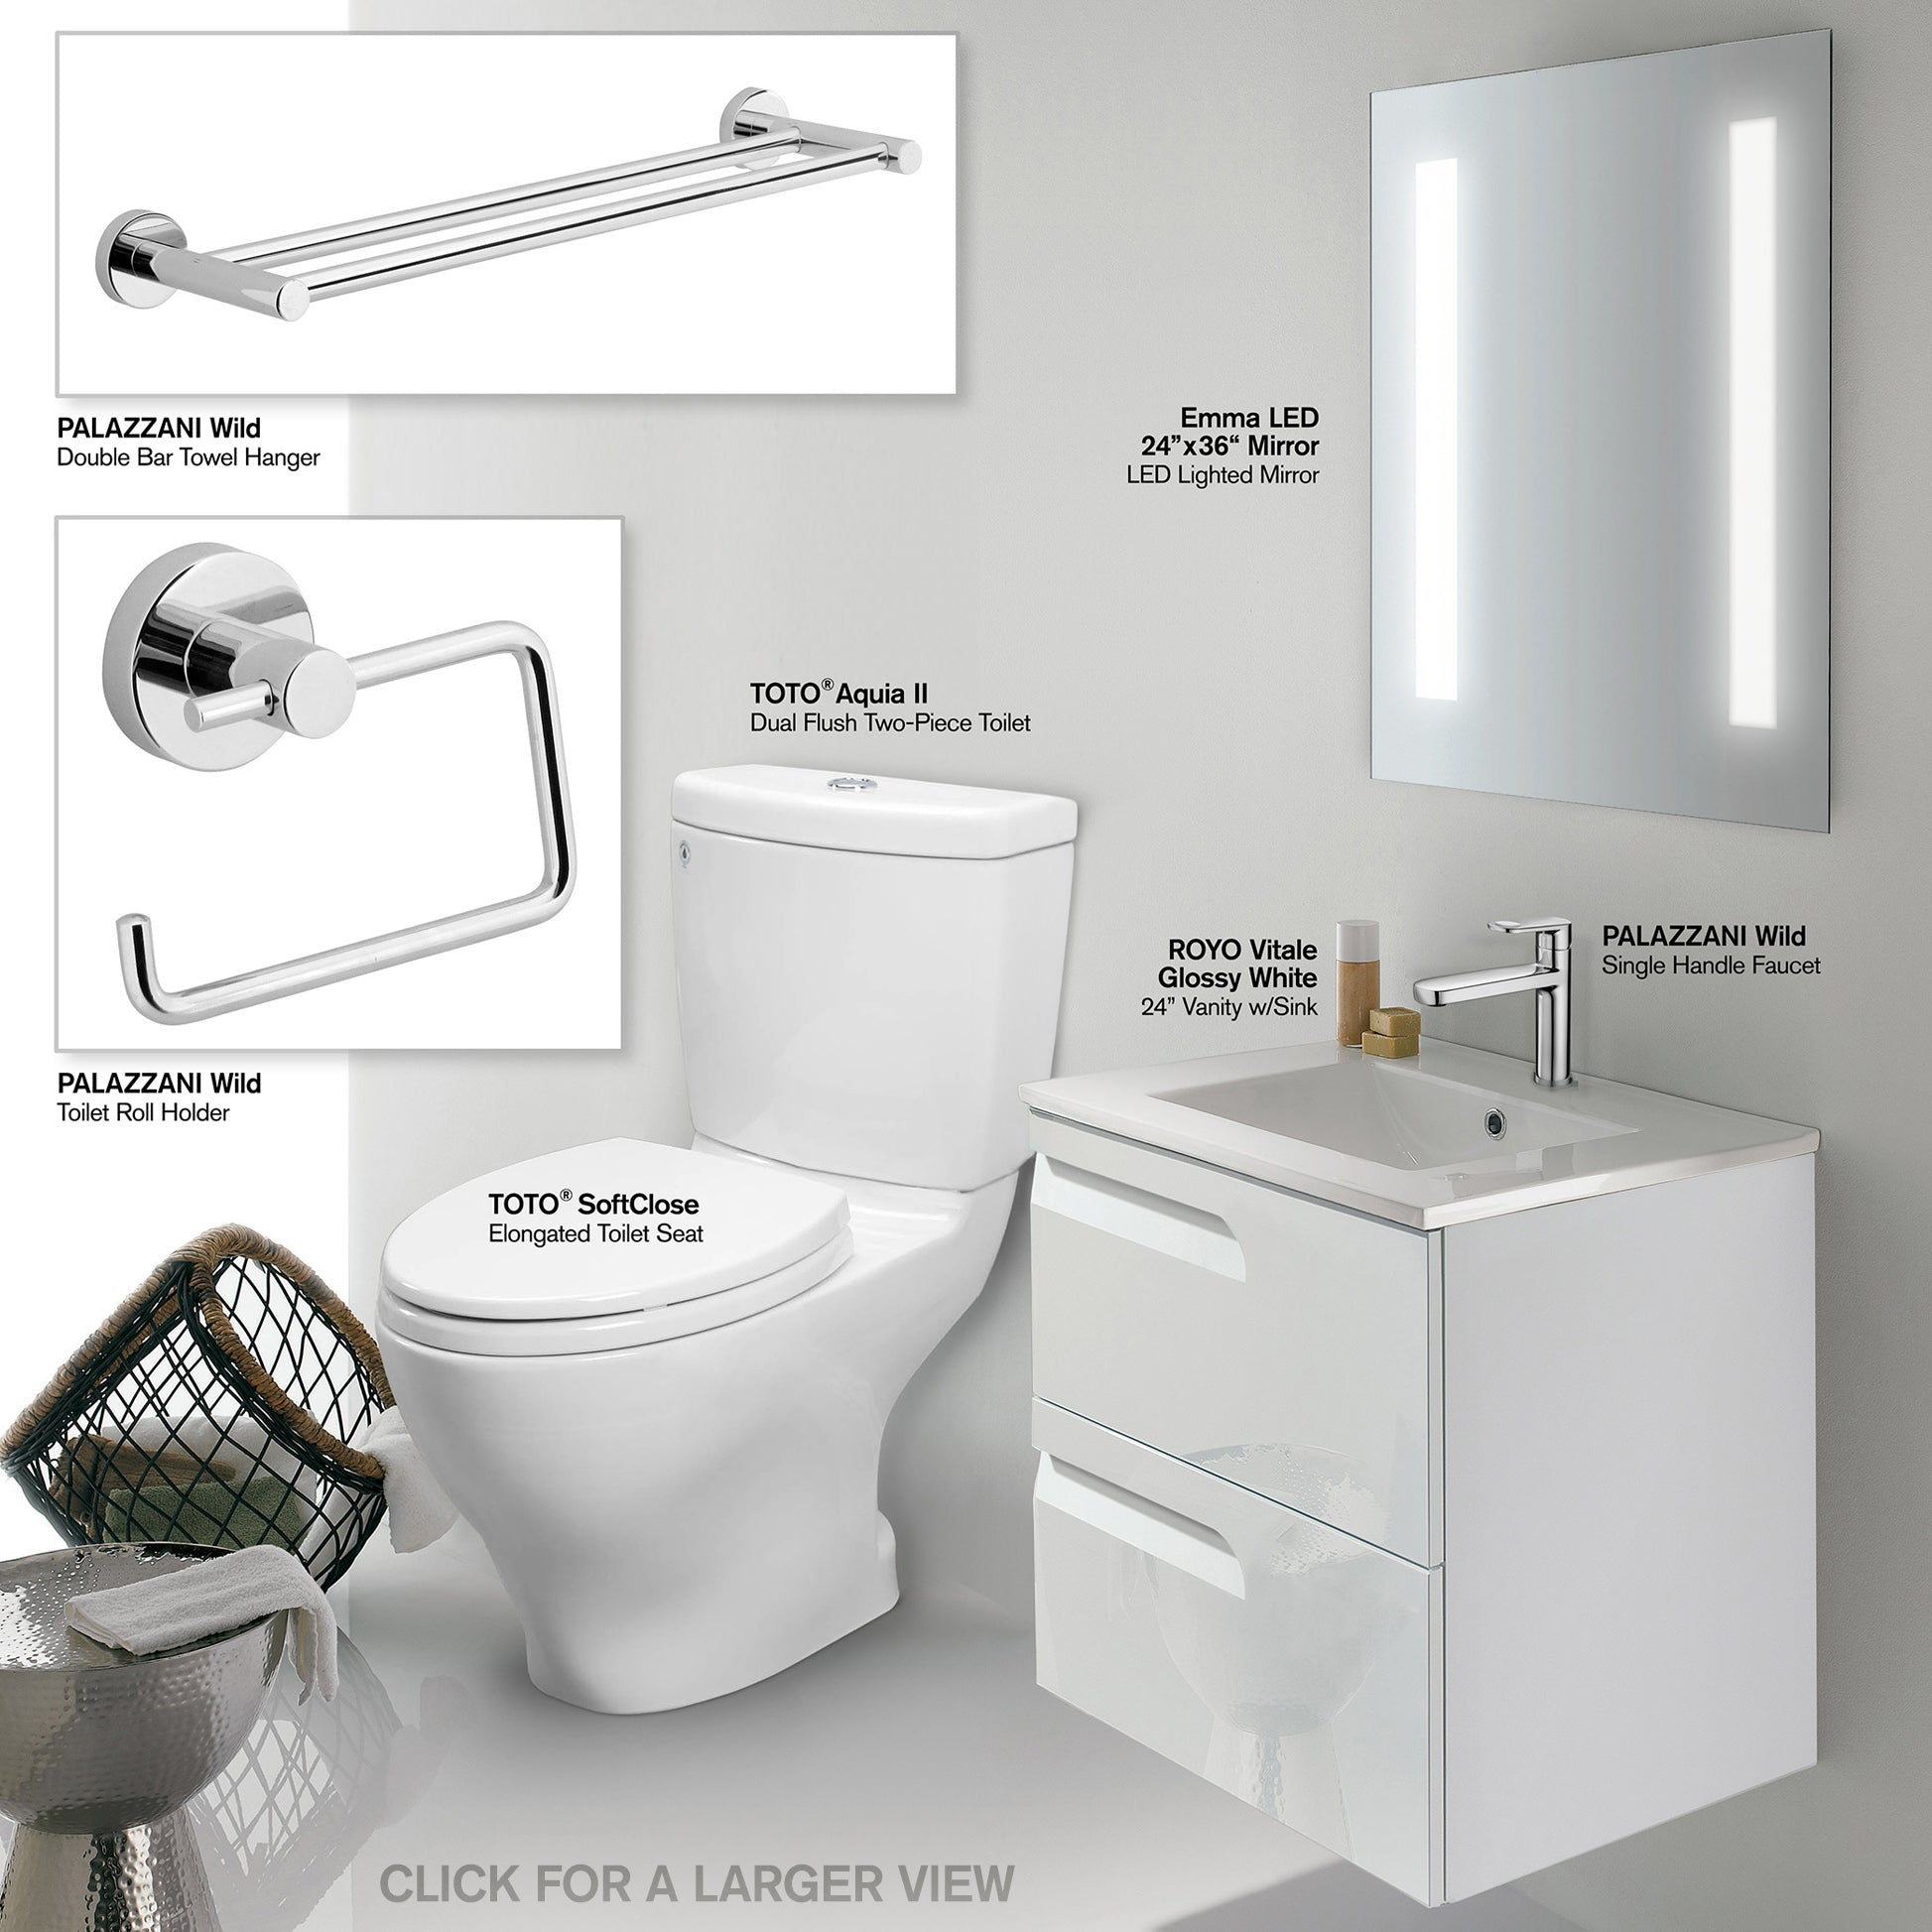 Bathroom and toilet accessories - Bathroom Vanity Set Includes Toto Cst416m 01 Toilet 24 Royo Wall